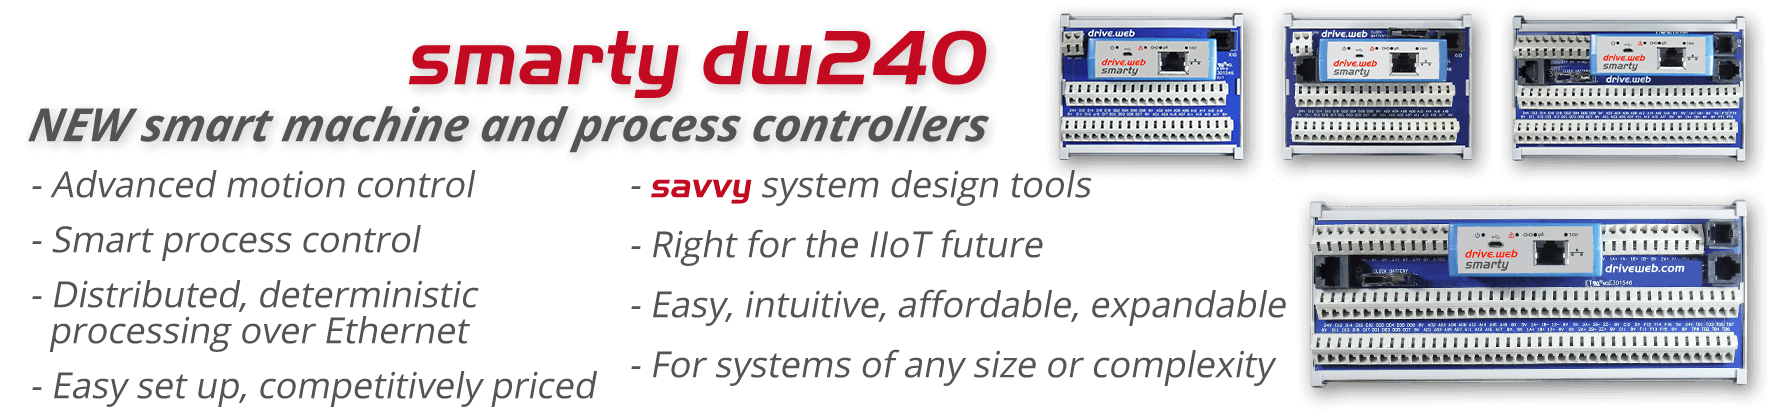 smarty dw240 - smart motion and process controllers